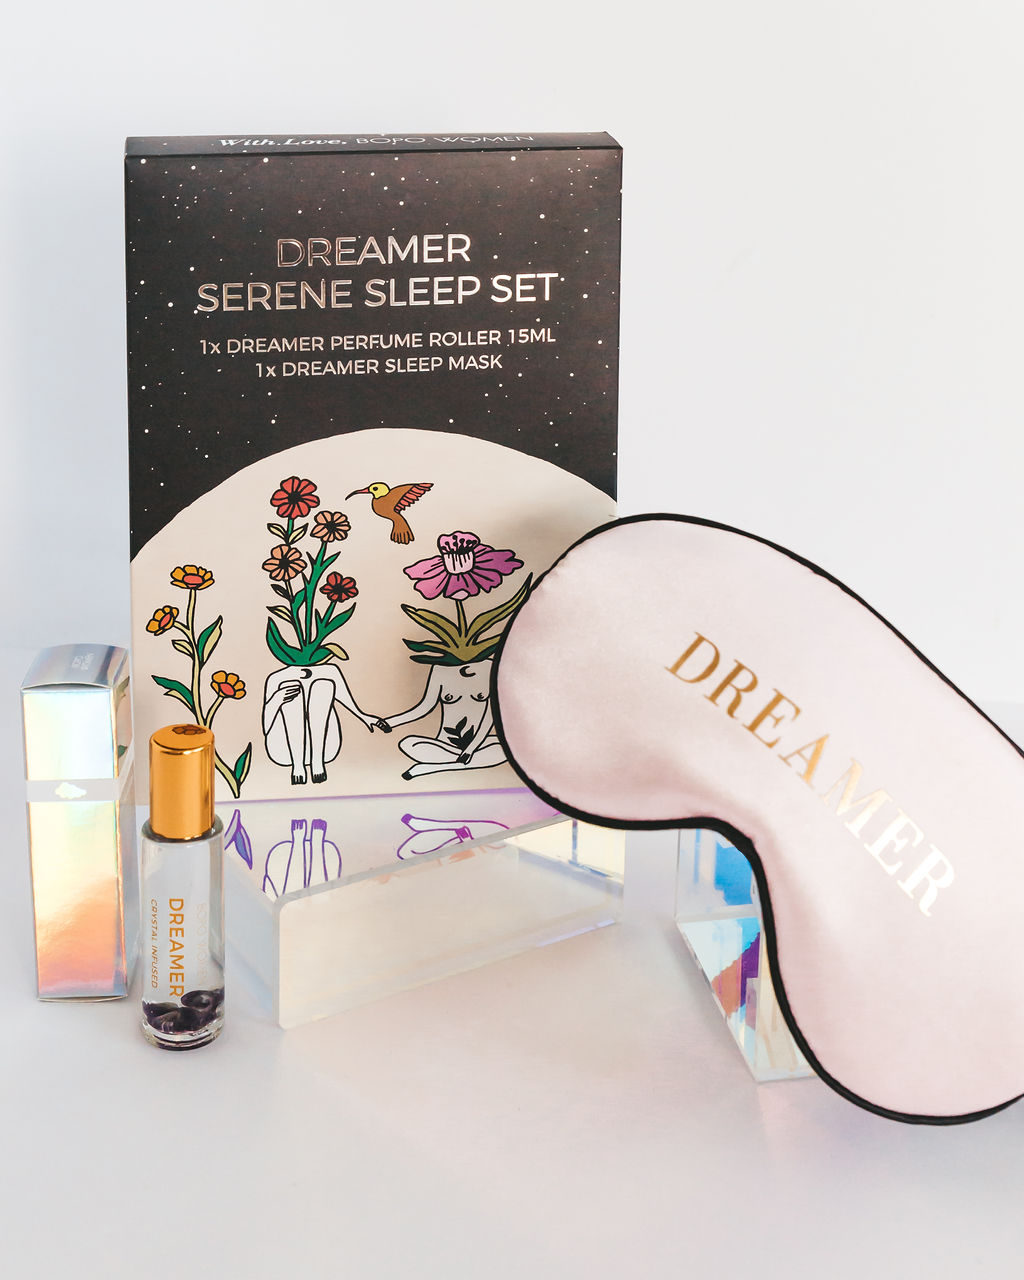 Dreamer Serene Sleep Set